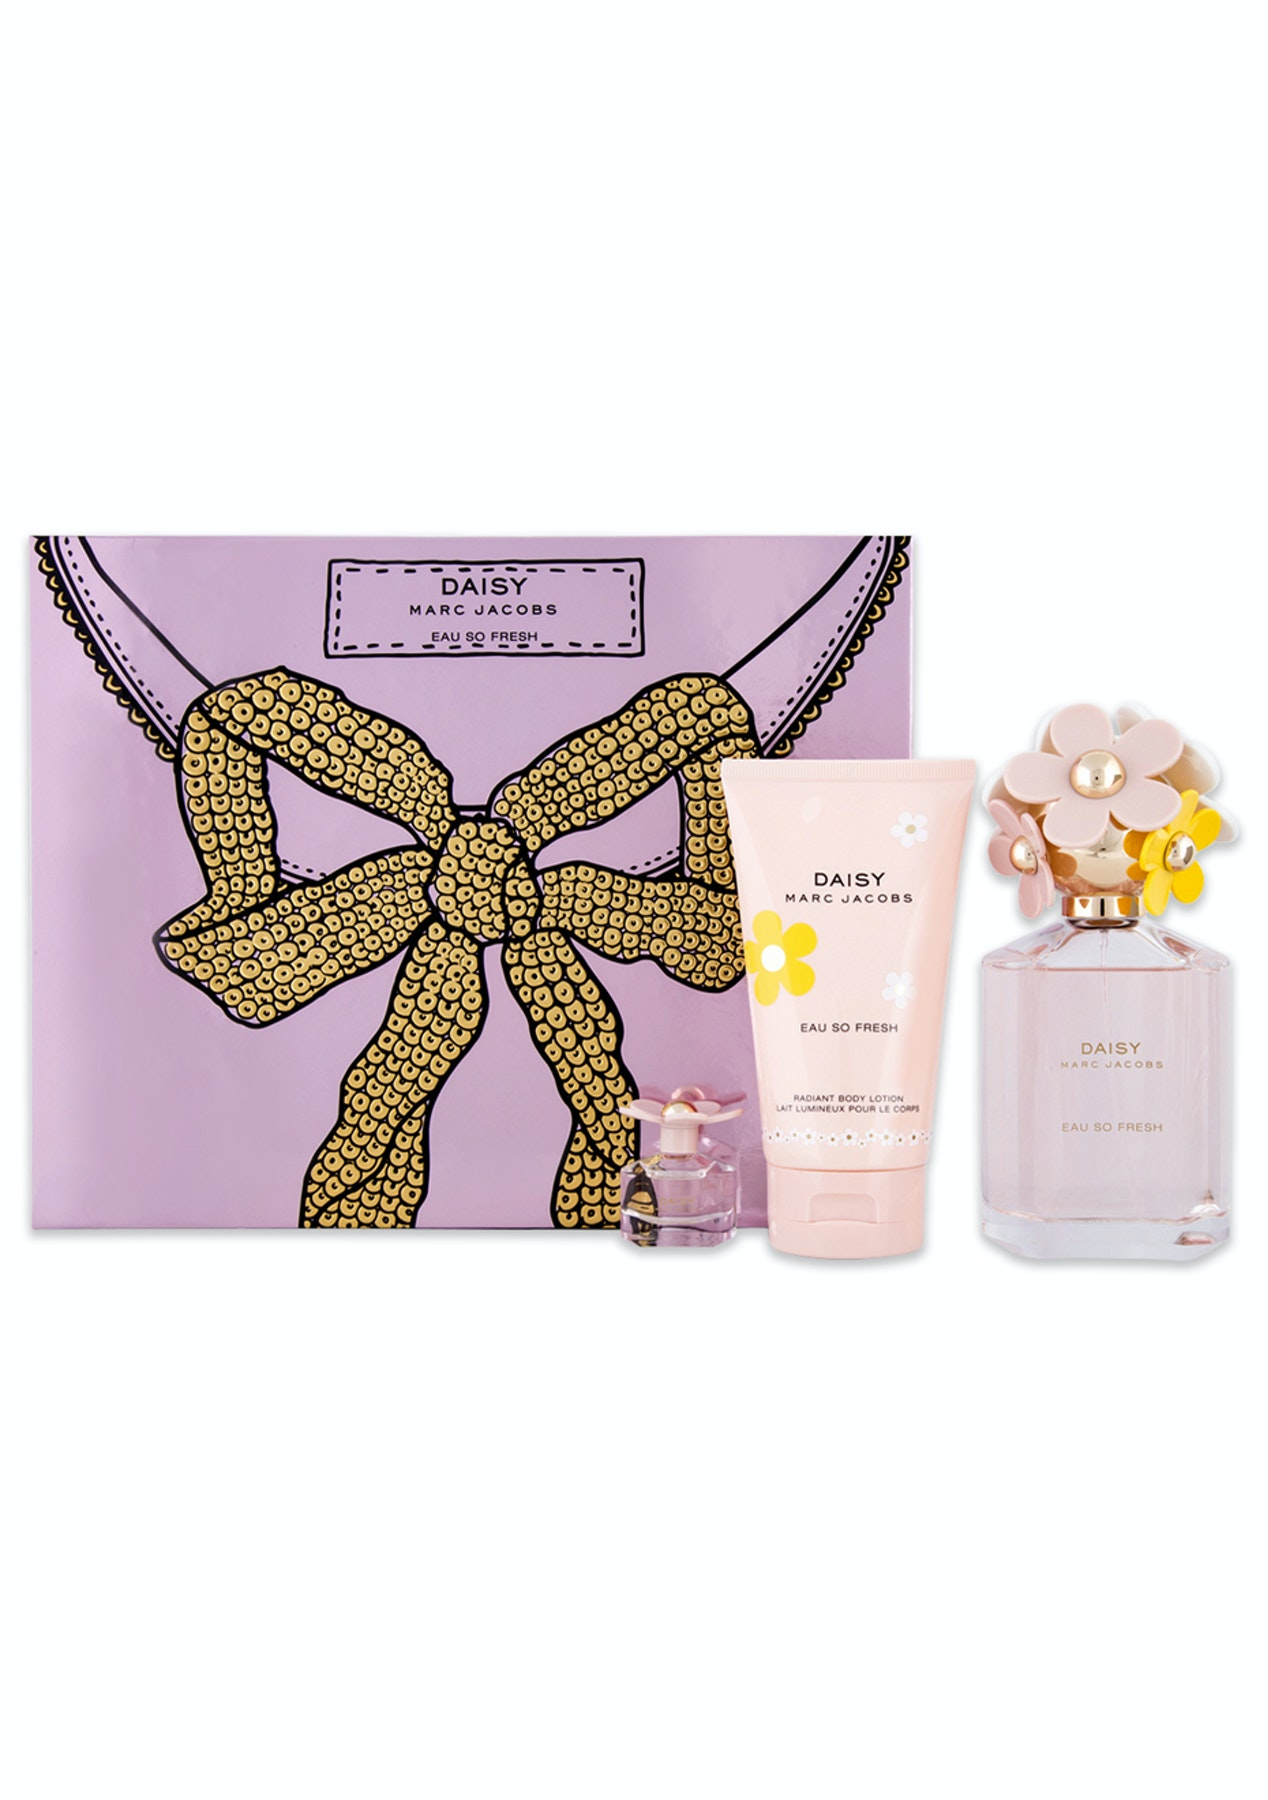 76ab9e1ab39c Marc Jacobs Daisy Eau So Fresh 3 Piece Set - Luxe Gifts for Her - Onceit